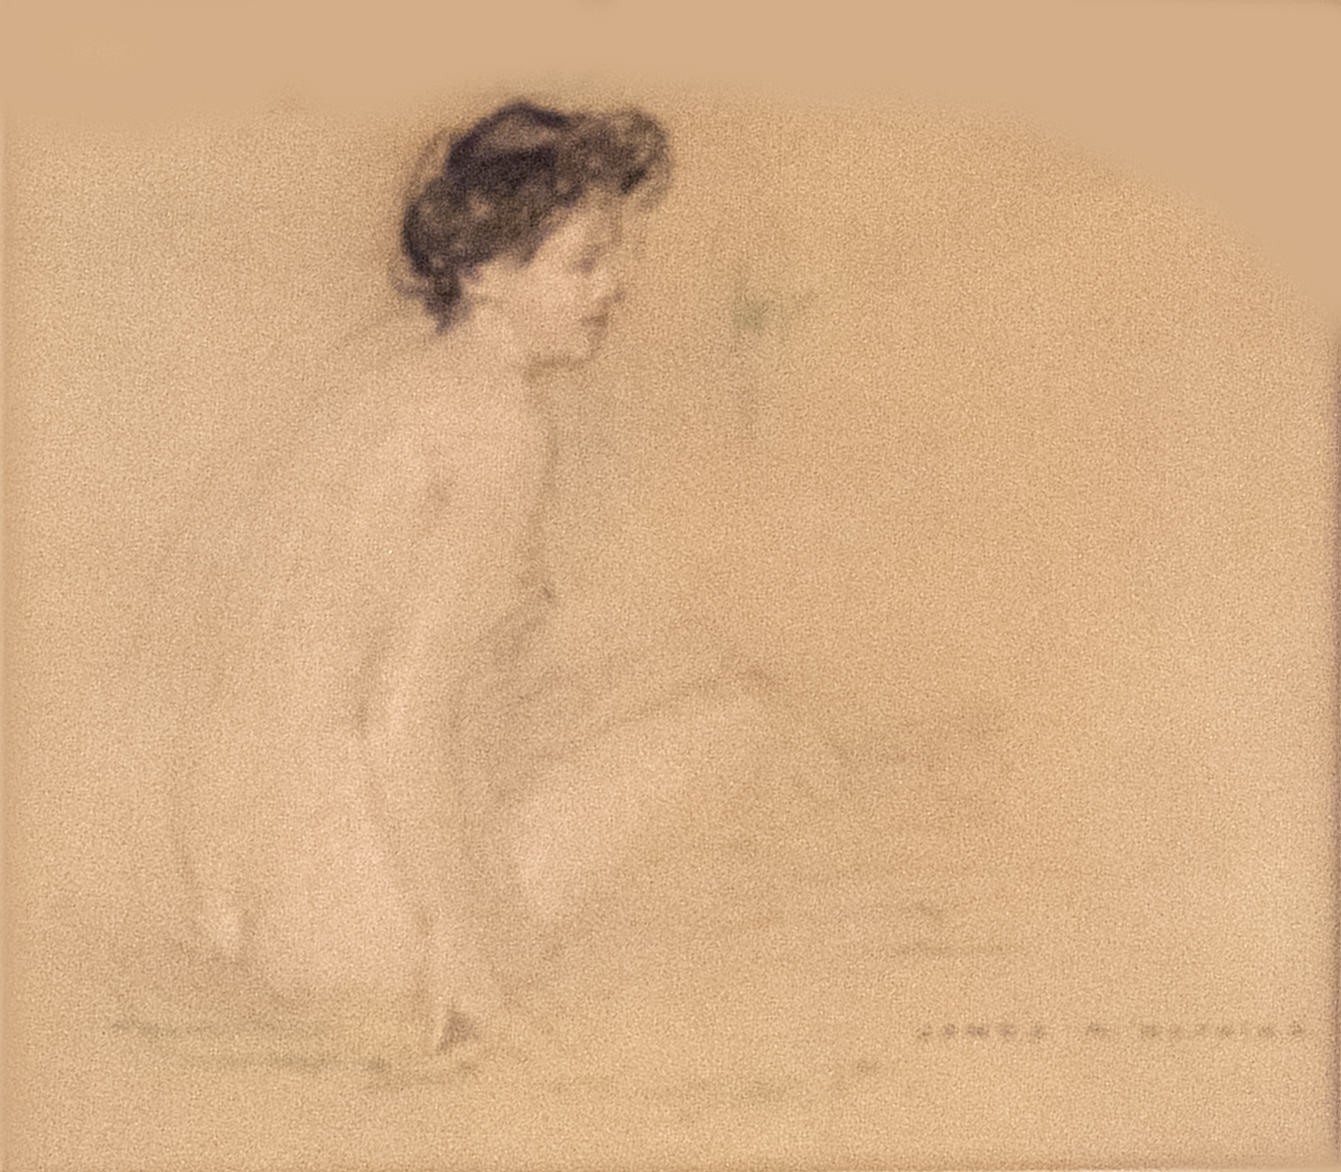 James R. Hopkins | FEMALE FIGURE #11 | pastel | 58-1/2 x 9-1/2"